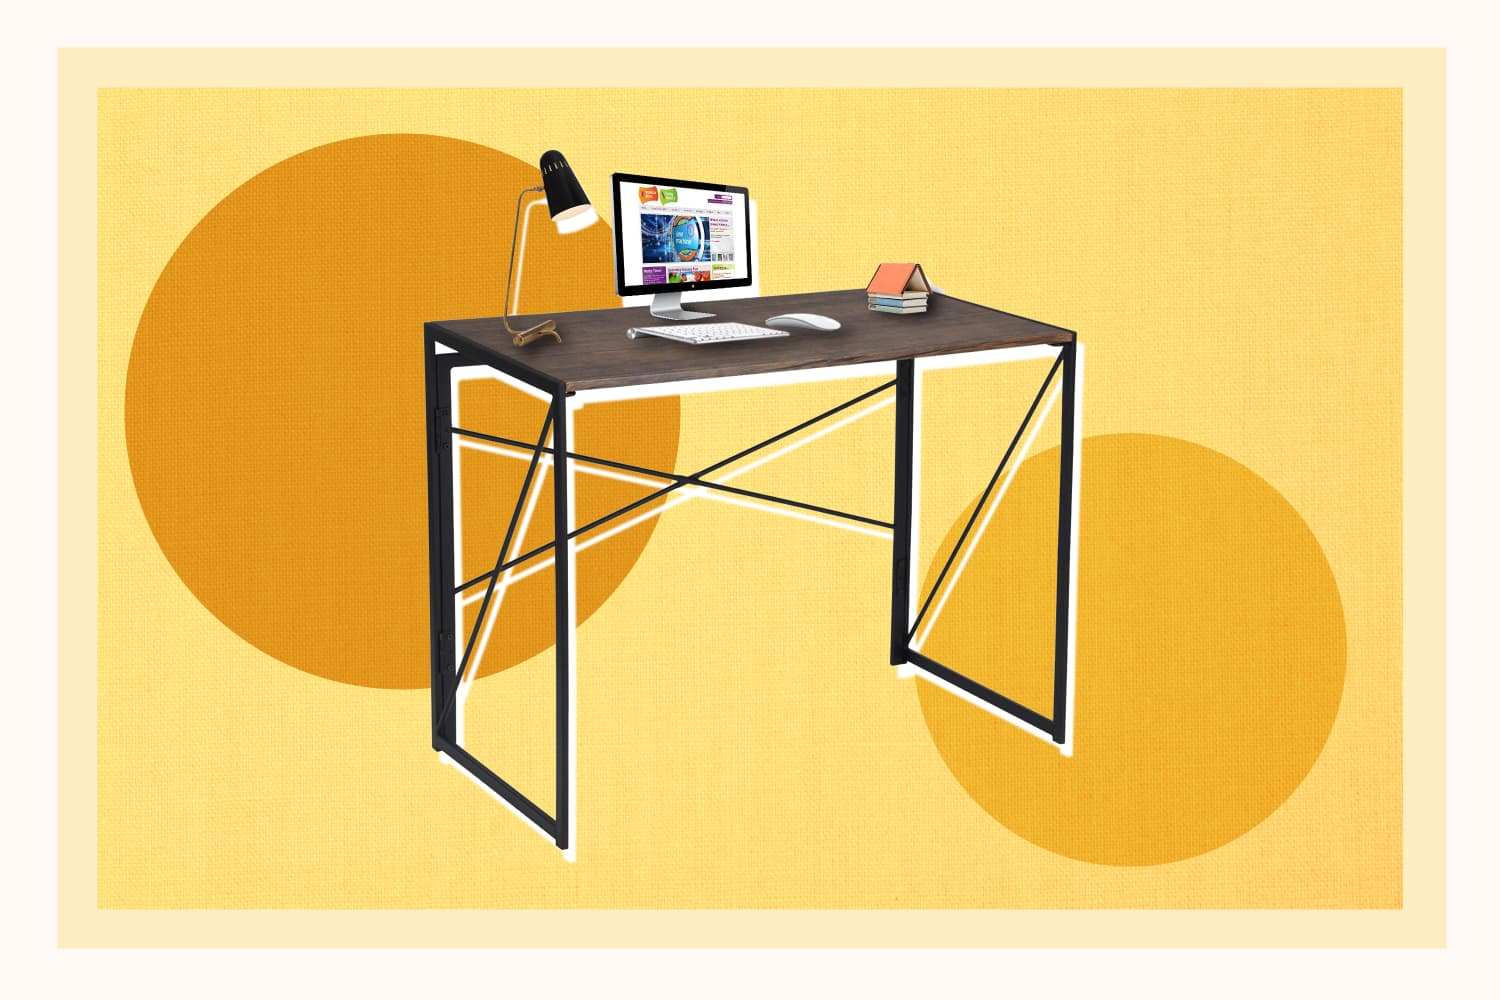 This $65 Foldable Desk Needs No Assembly—And It Has Over 2,000 5-Star Reviews on Amazon